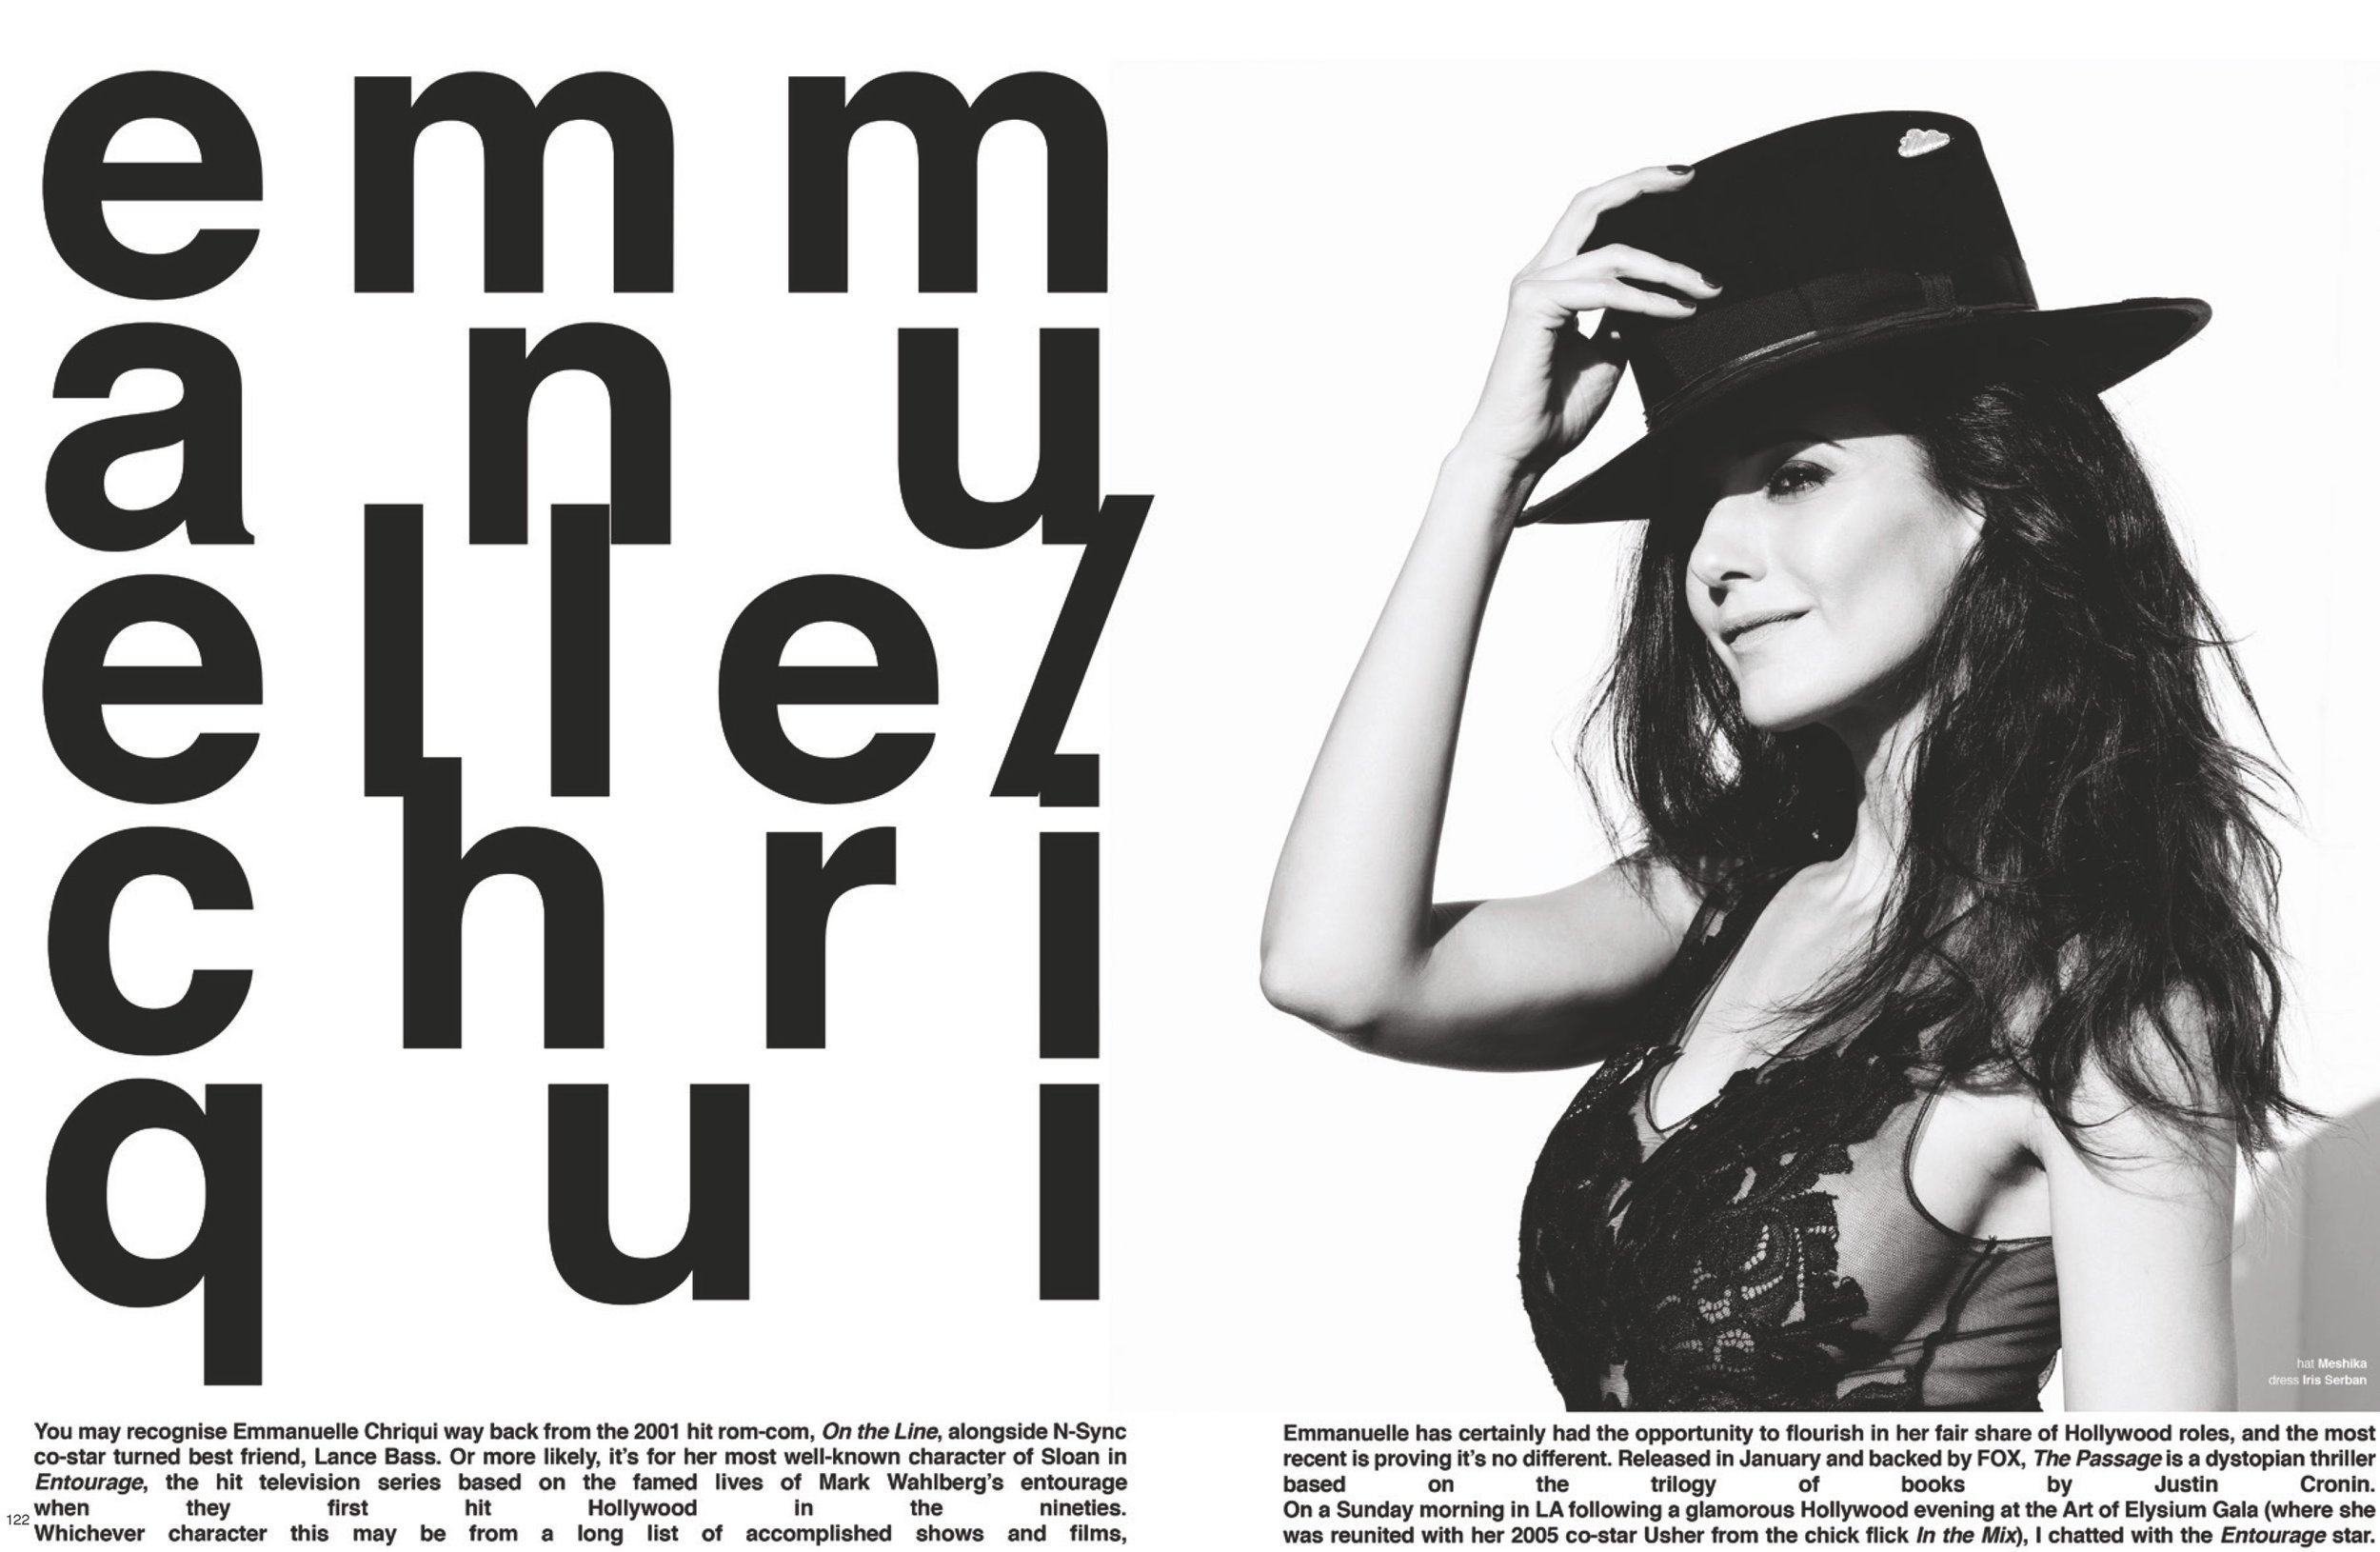 1883_Magazine_EXPOSED_Issue_XIV_Emmanuelle_Chriqui_feature.jpg